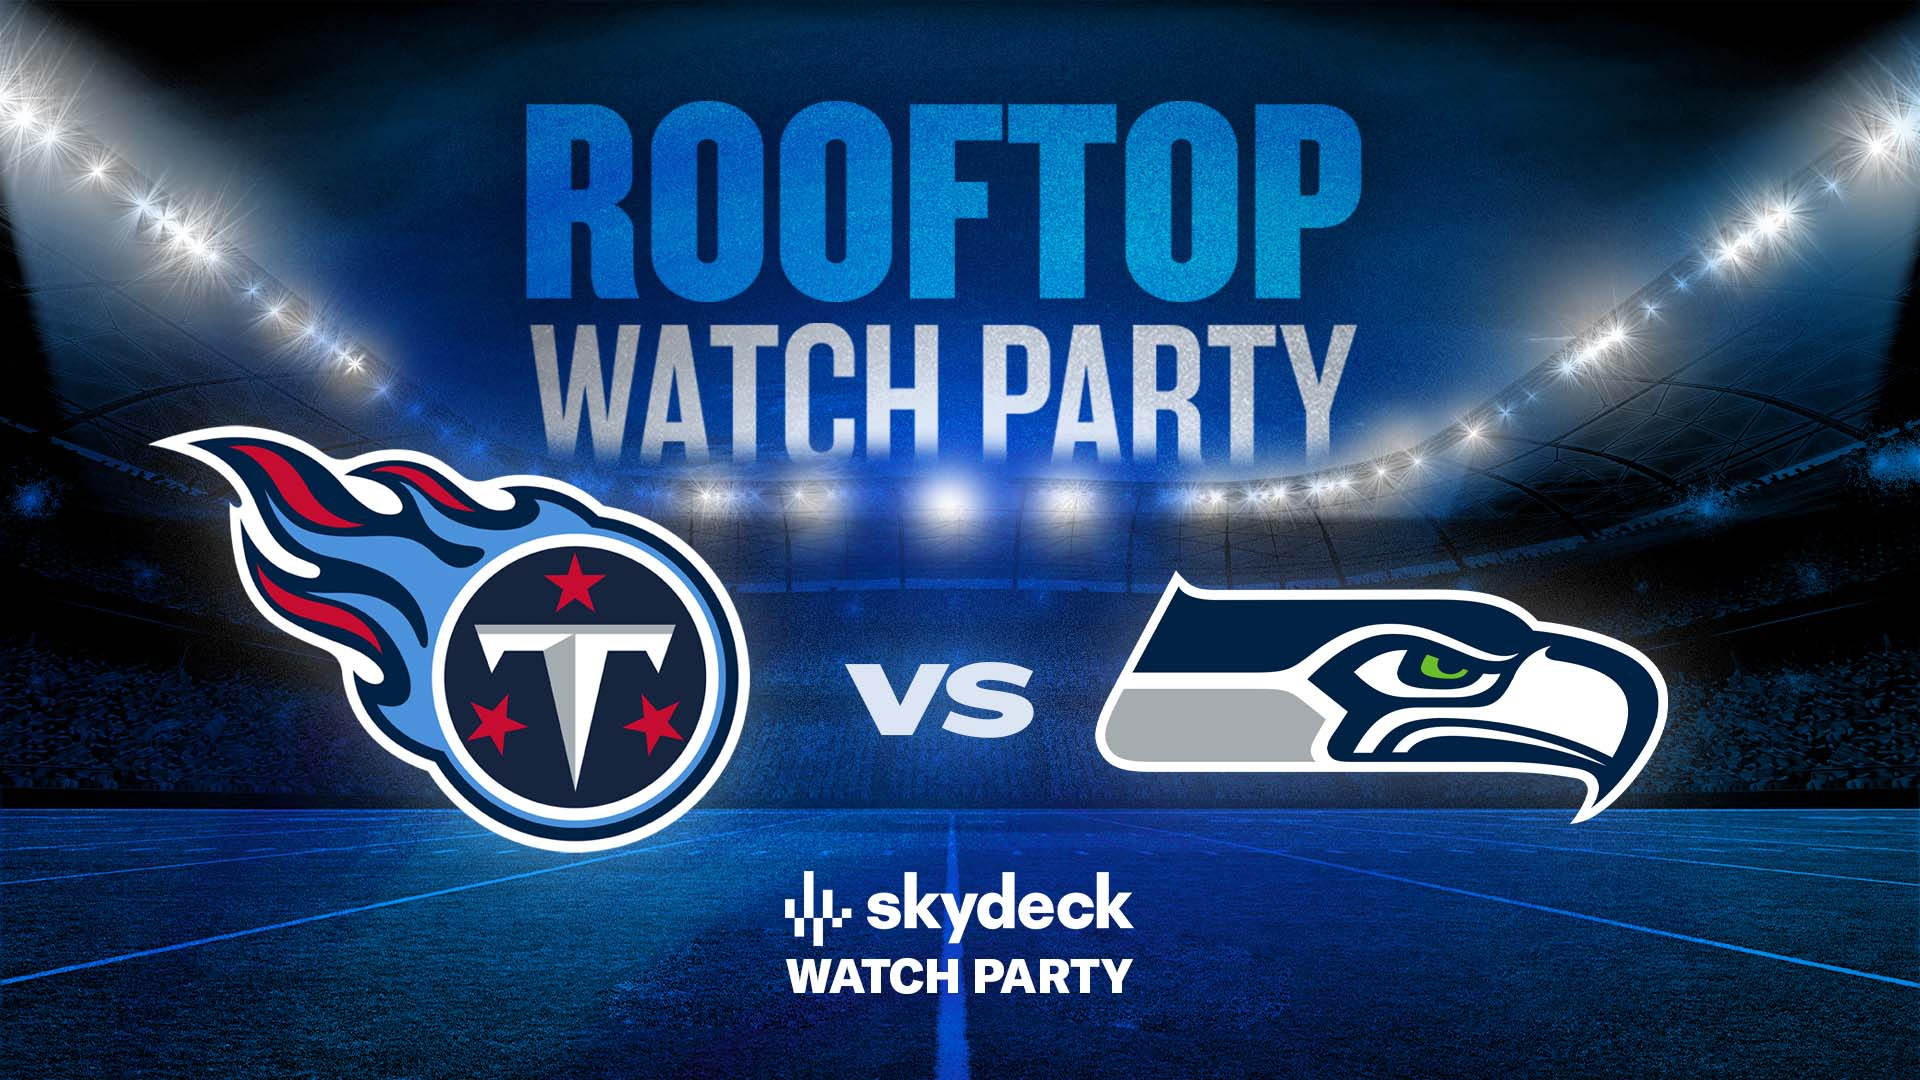 Promo image of Titans vs. Seahawks Skydeck Watch Party